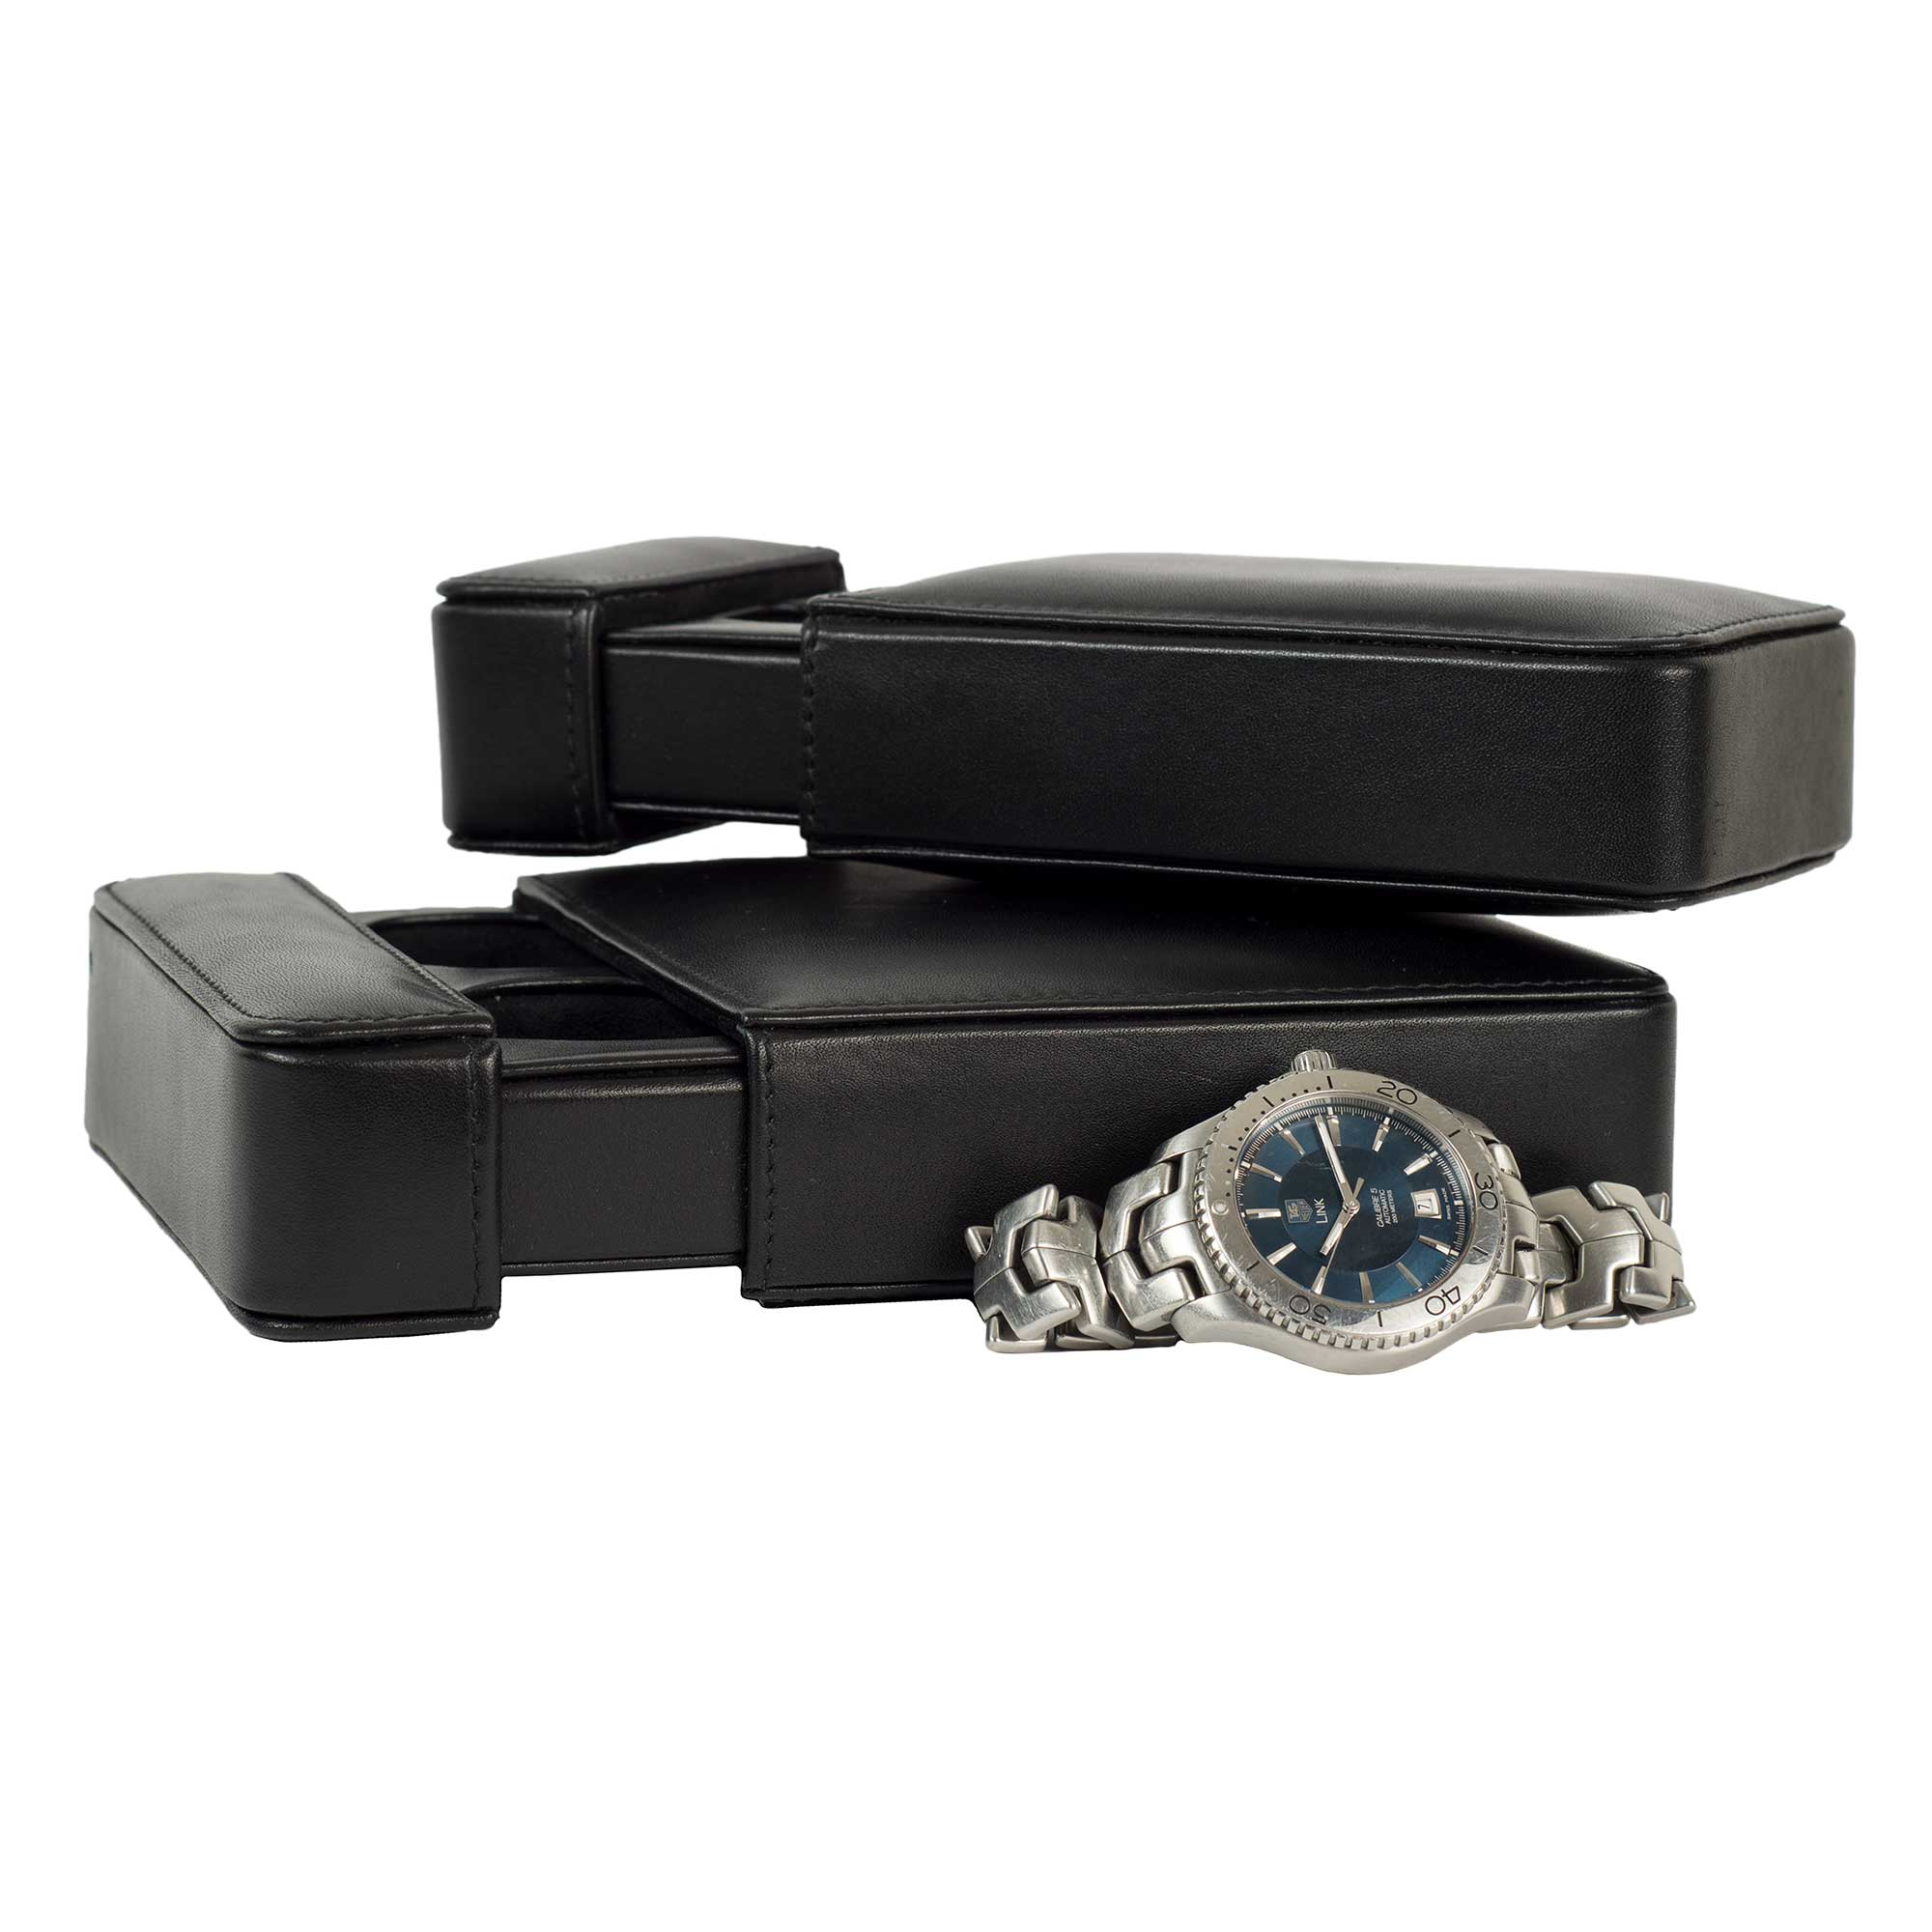 DiLoro Italy Leather Travel Watch Box Cases are available in single and double size - color black.